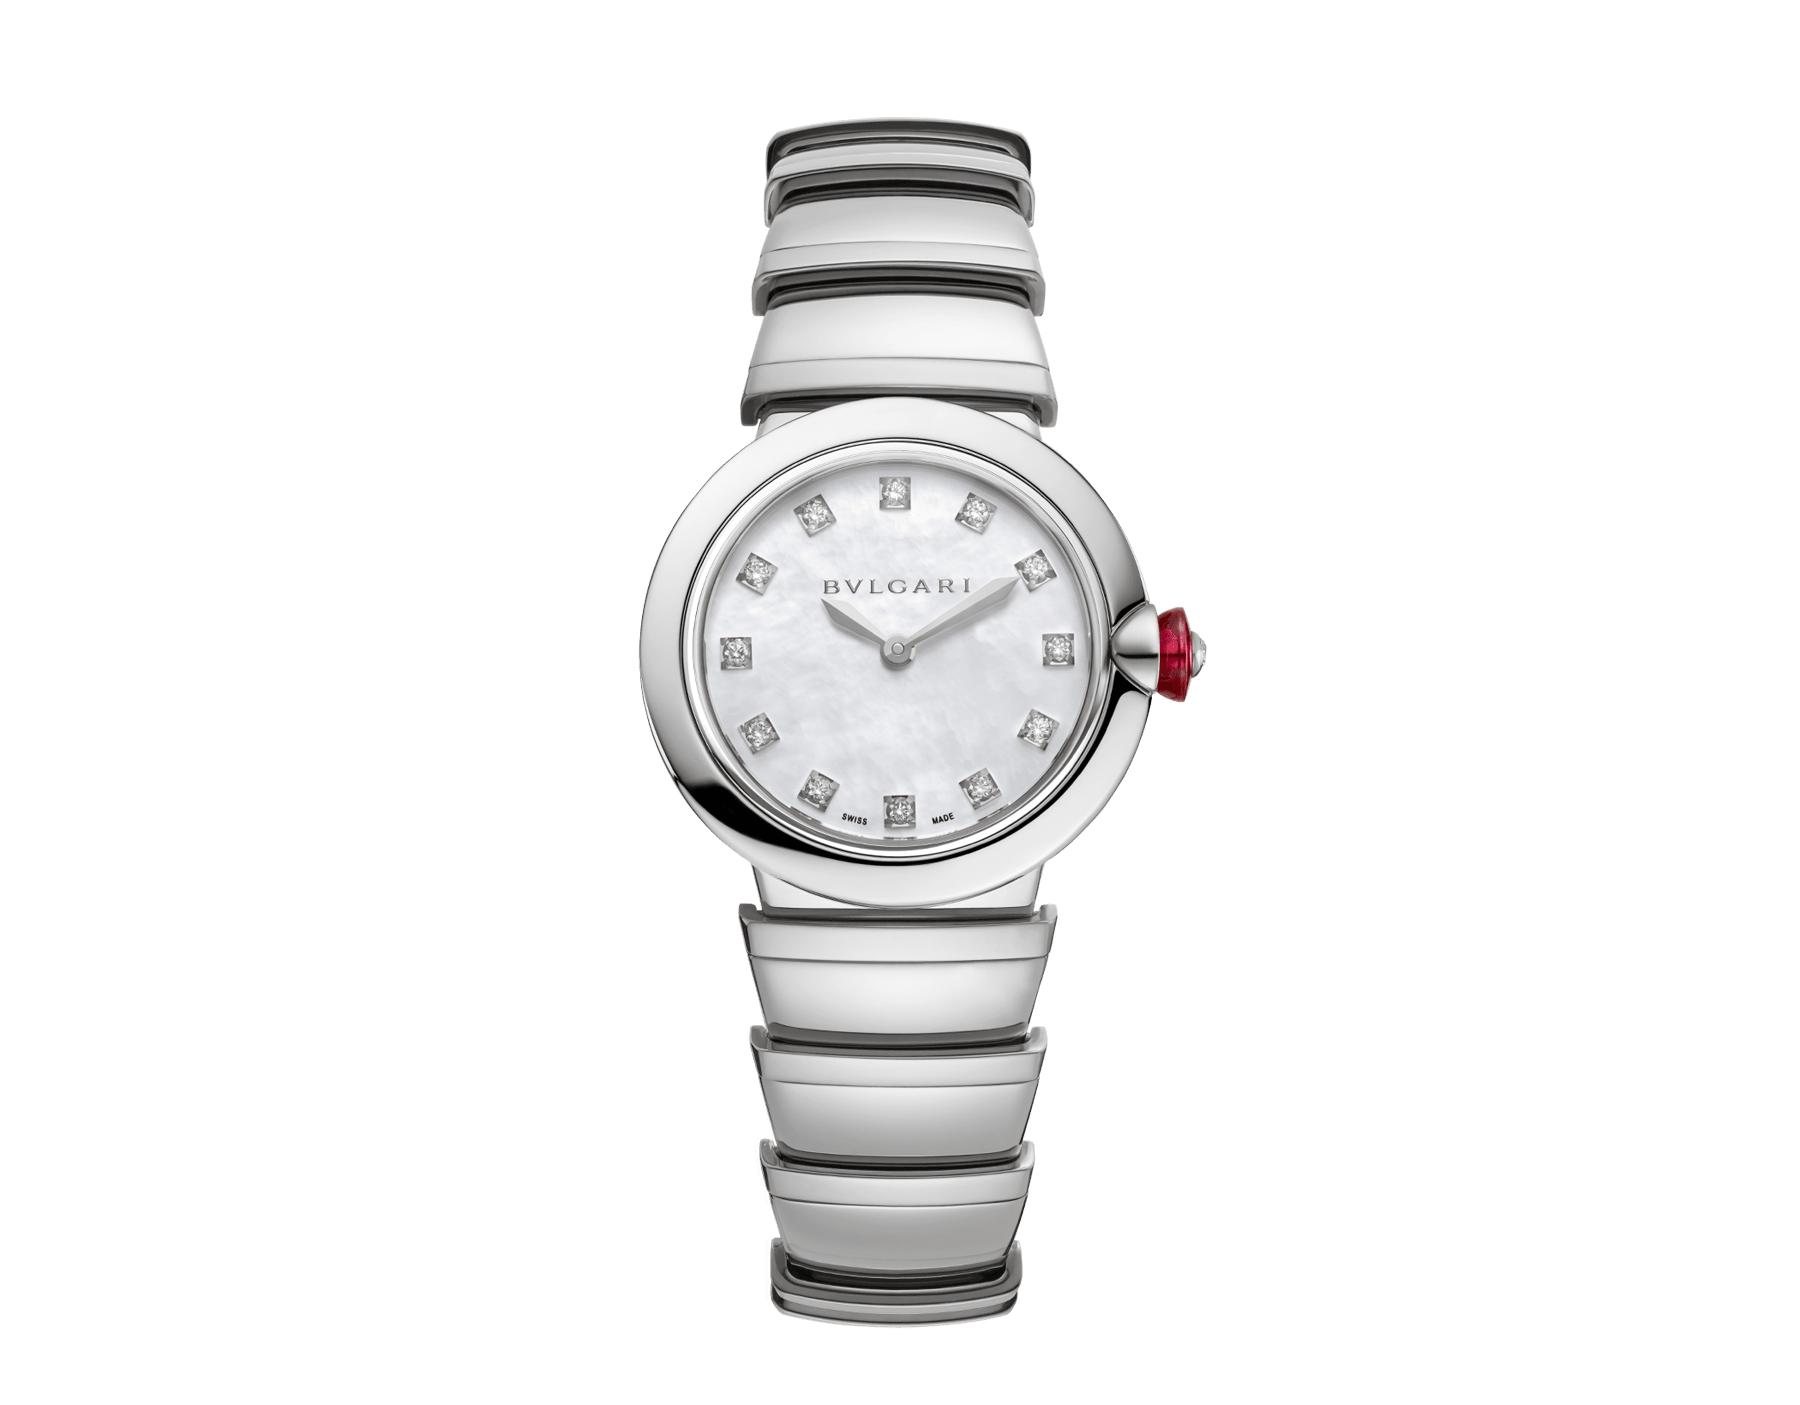 LVCEA watch in stainless steel case and bracelet, white mother-of-pearl dial and diamond indexes. 102196 image 1